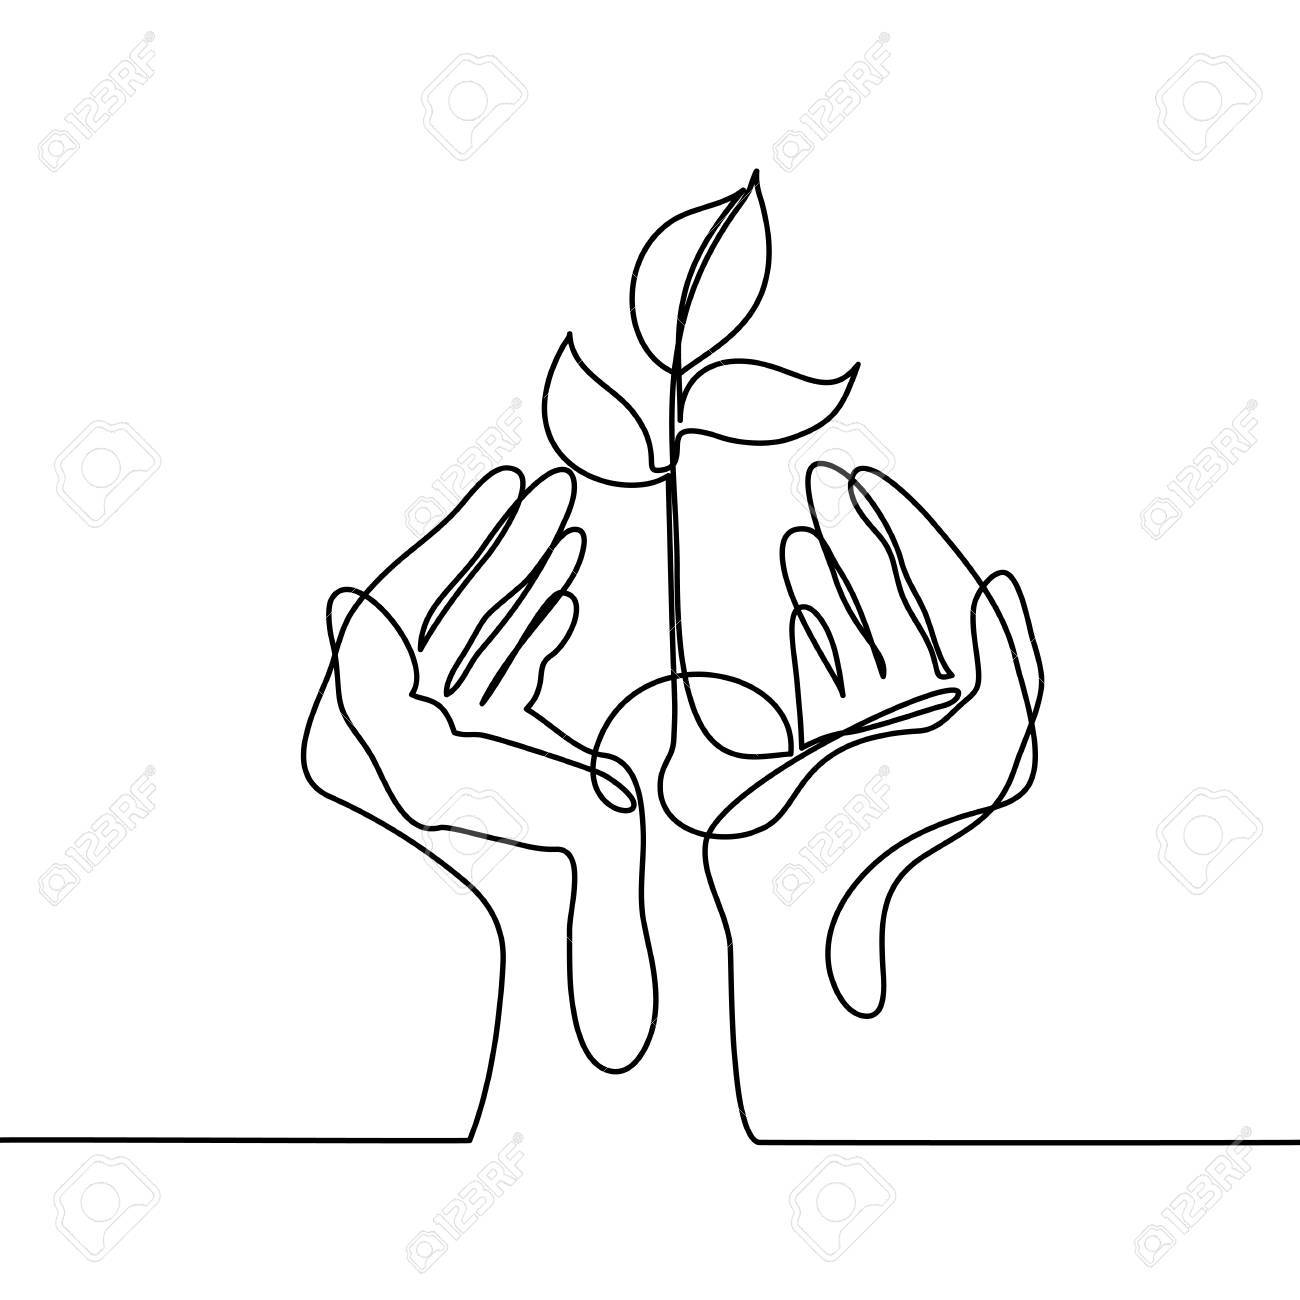 Continuous line drawing. Hands palms together with growth plant. Vector illustration - 82397577